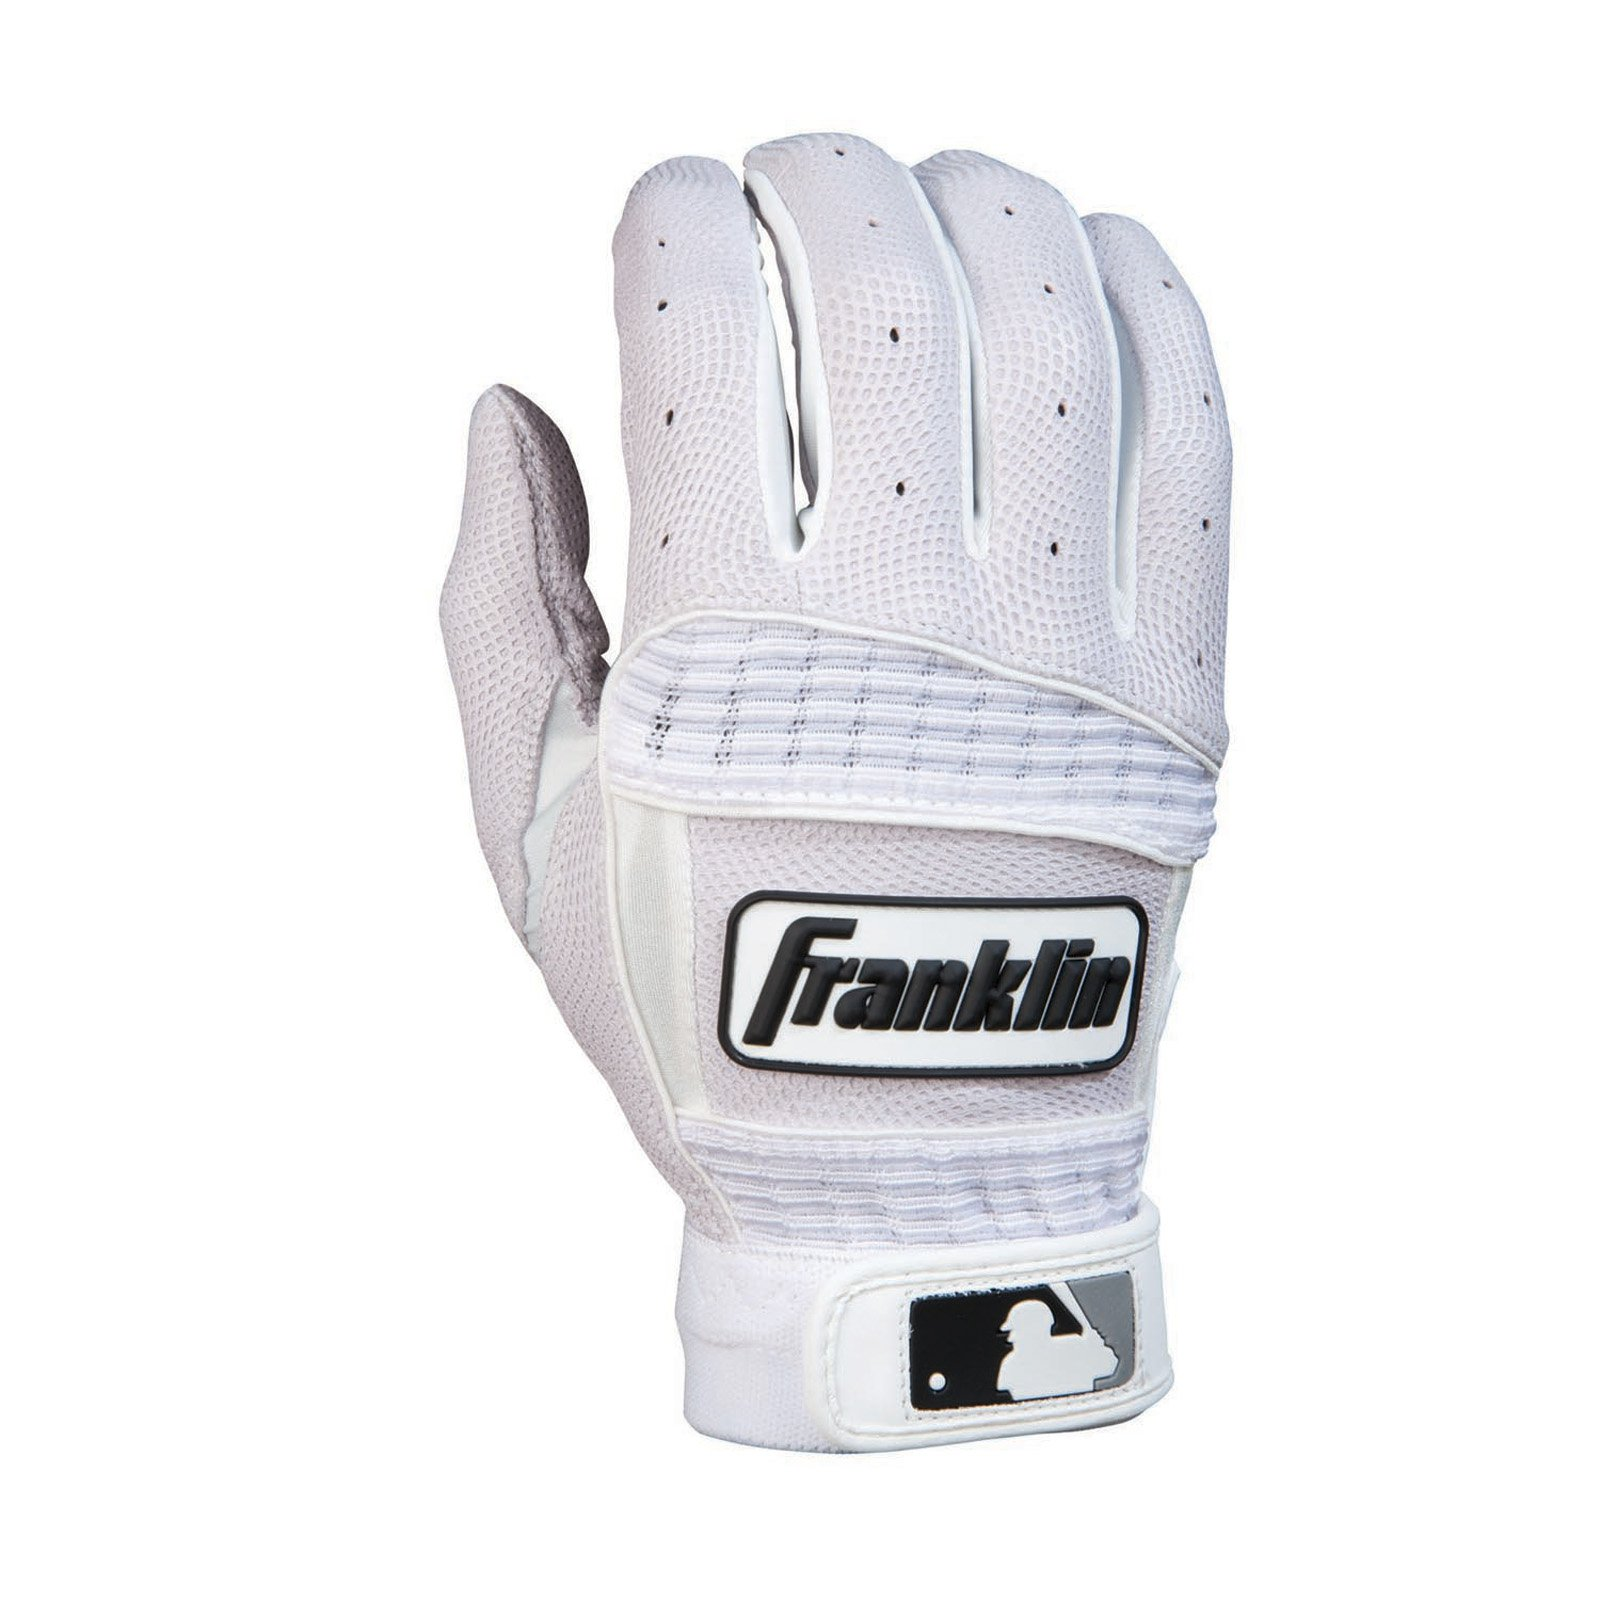 Franklin Neo Classic II Series Adult Batting Gloves - Pearl/White